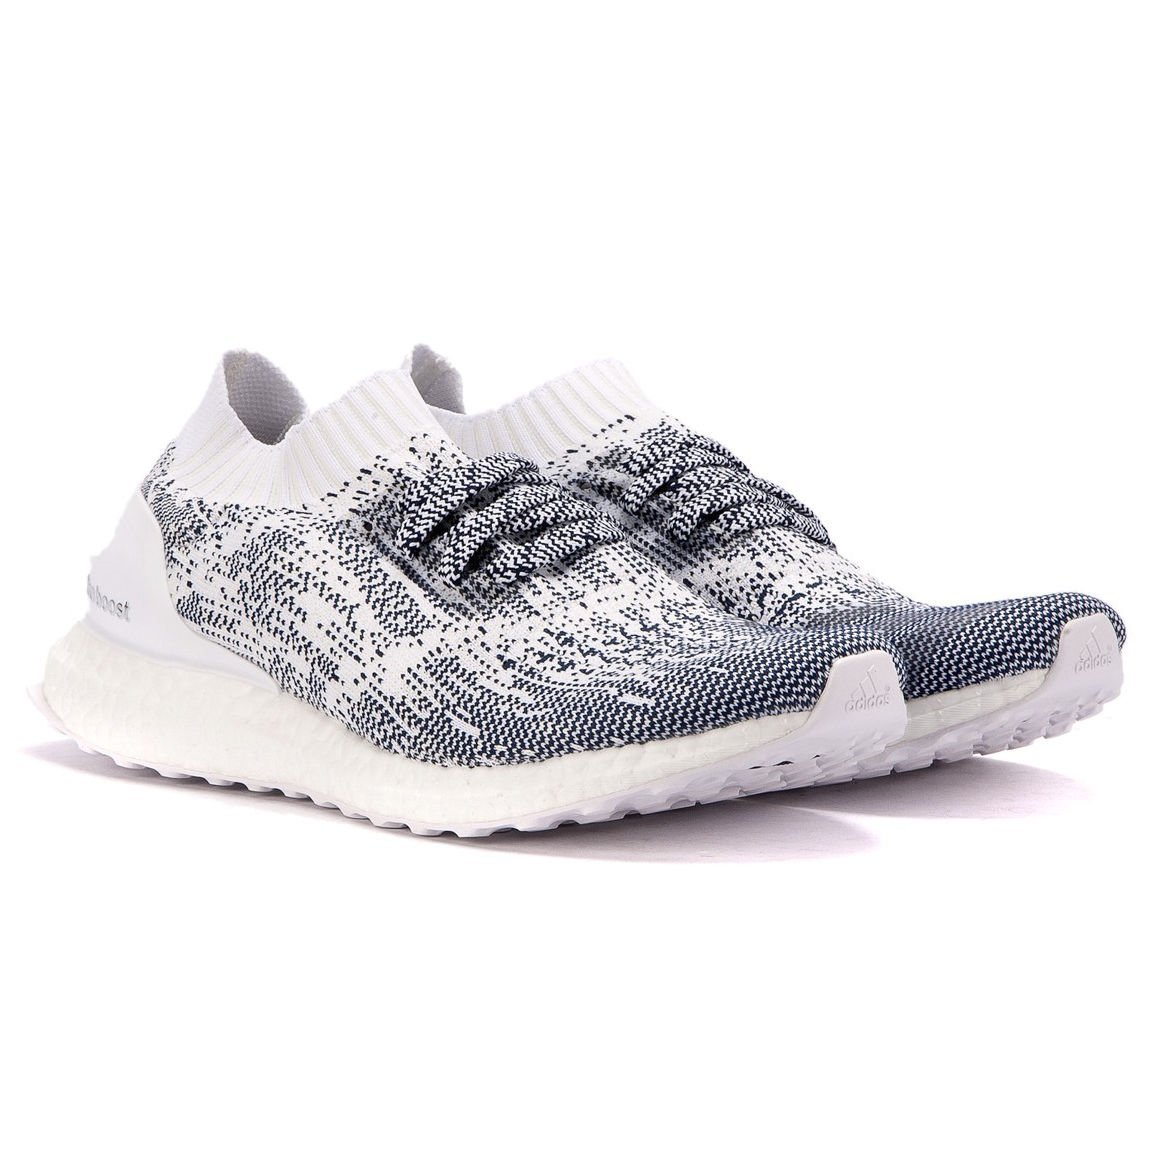 f37d94bebb1f9 Galleon - Adidas Ultra Boost Uncaged Oreo Mens Size 11